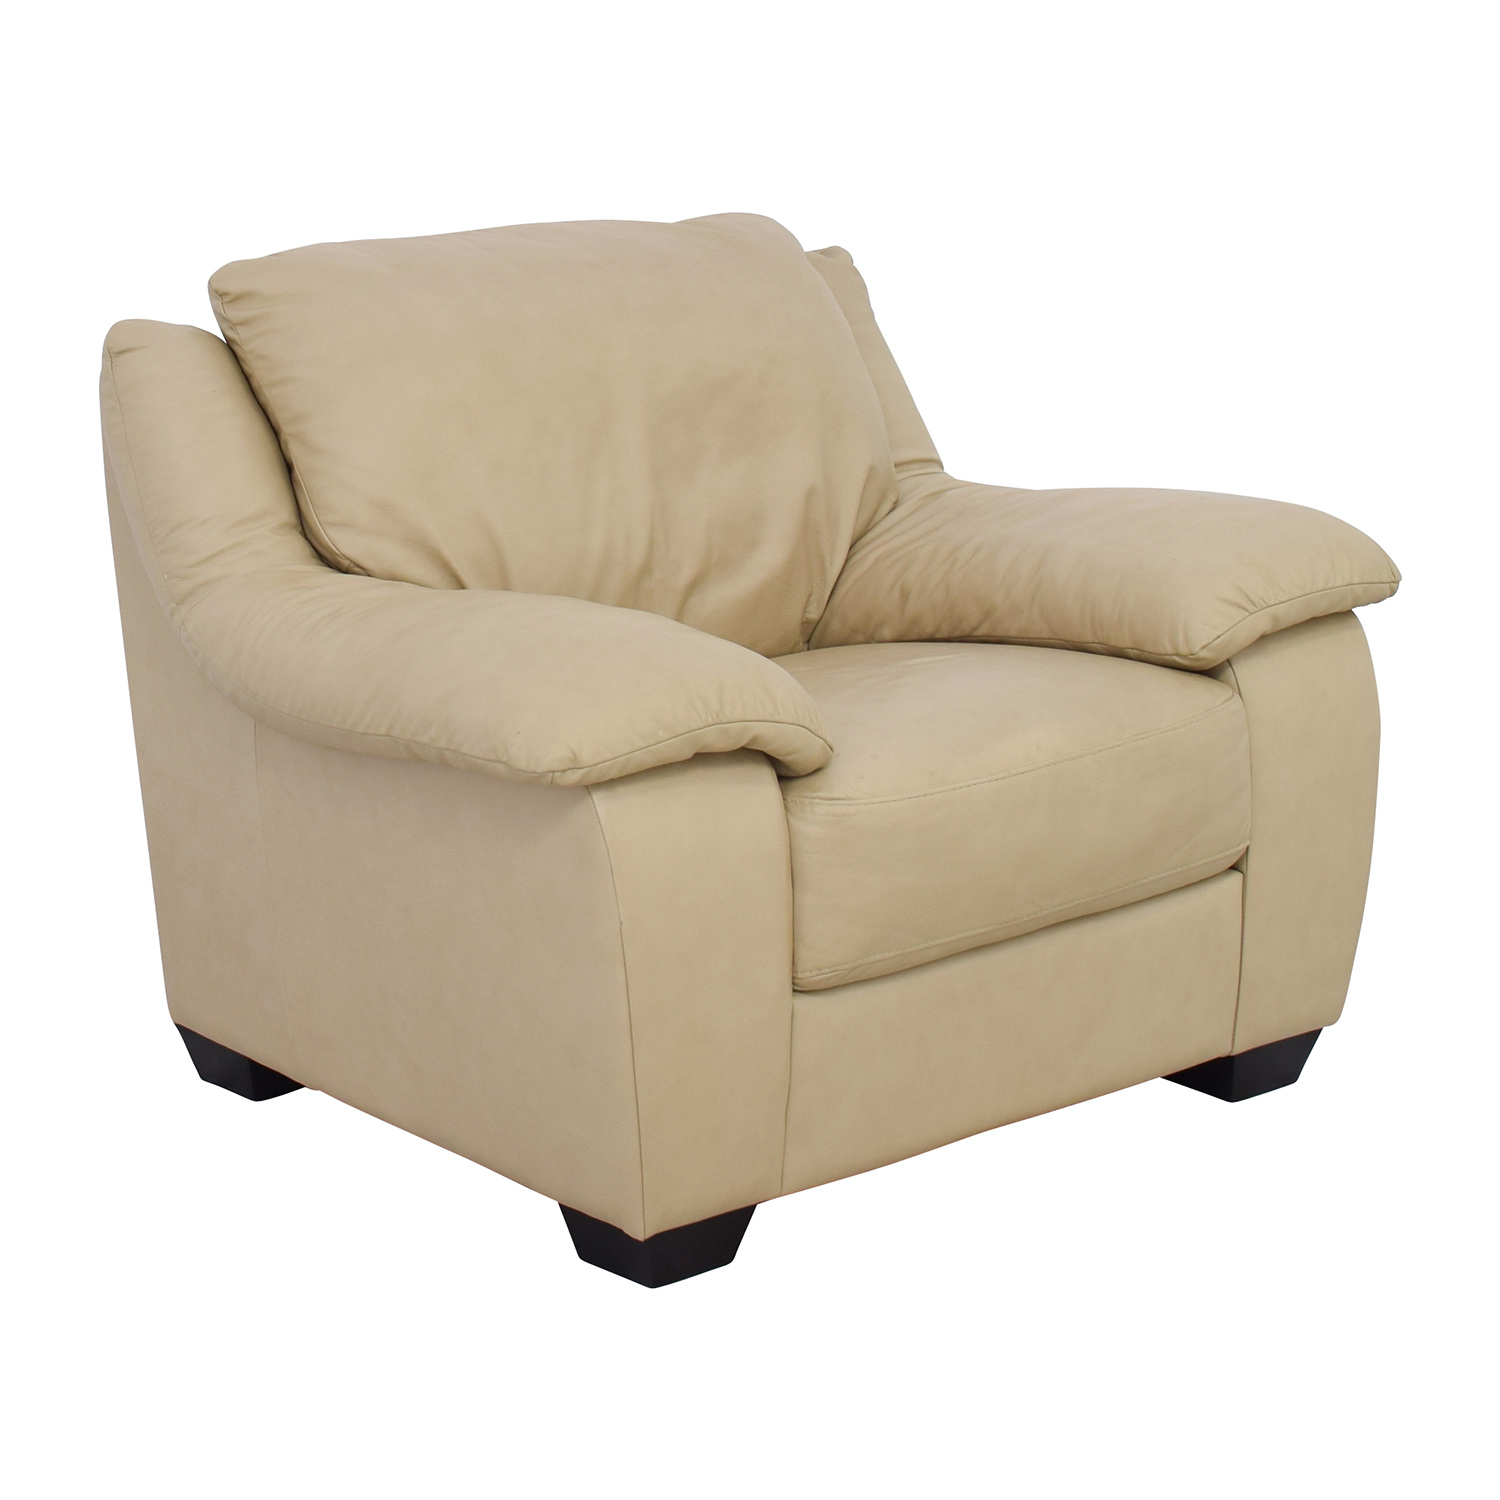 86 Off Natuzzi Natuzzi Italsofa Beige Leather Club